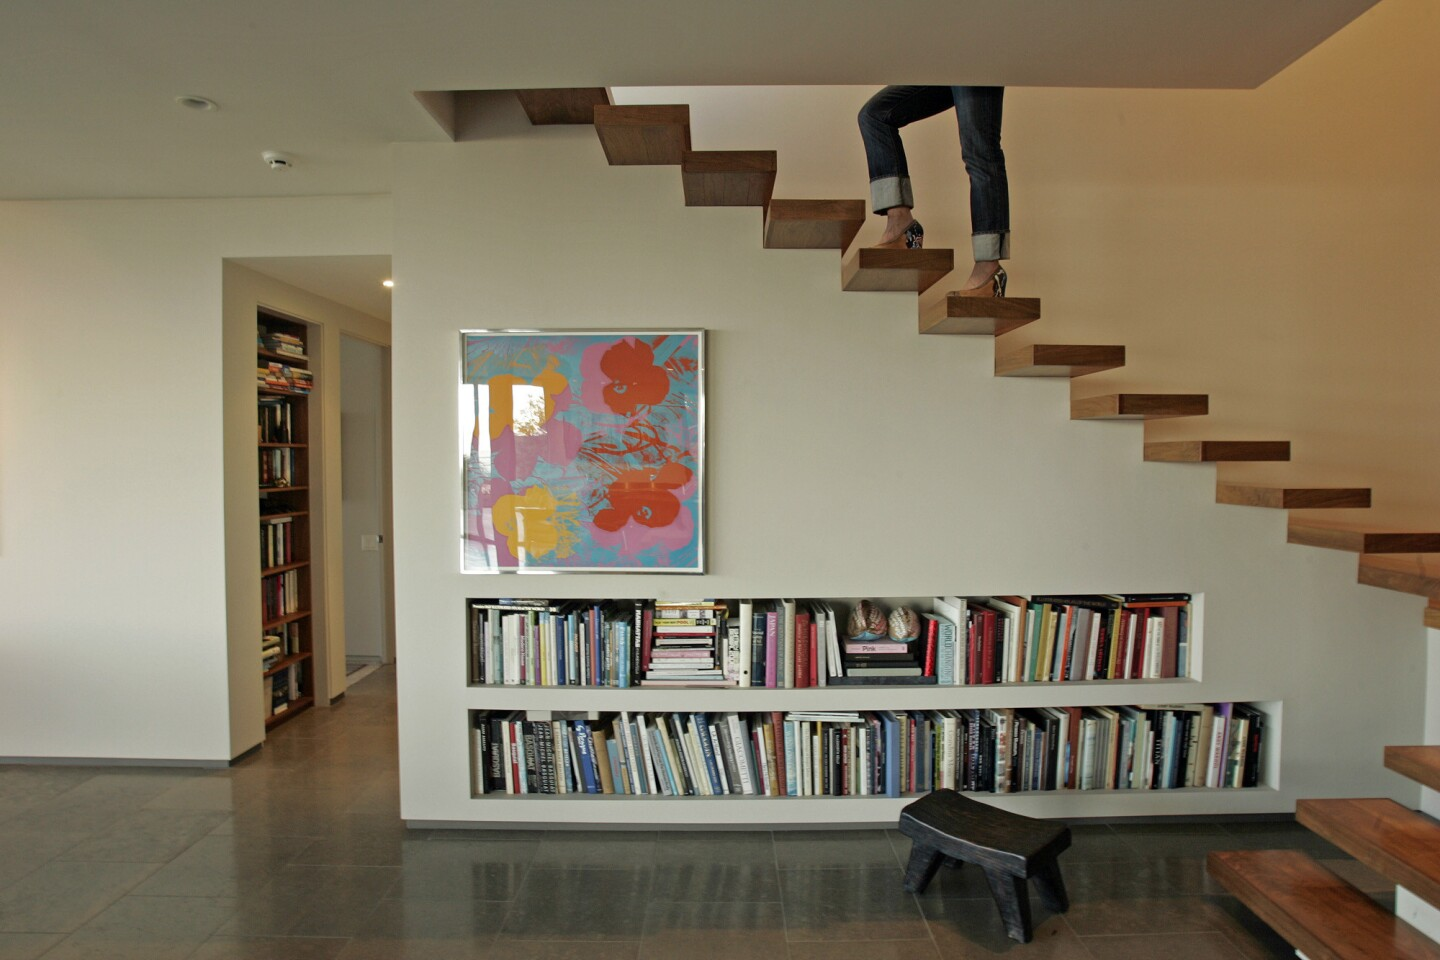 Staircases as art